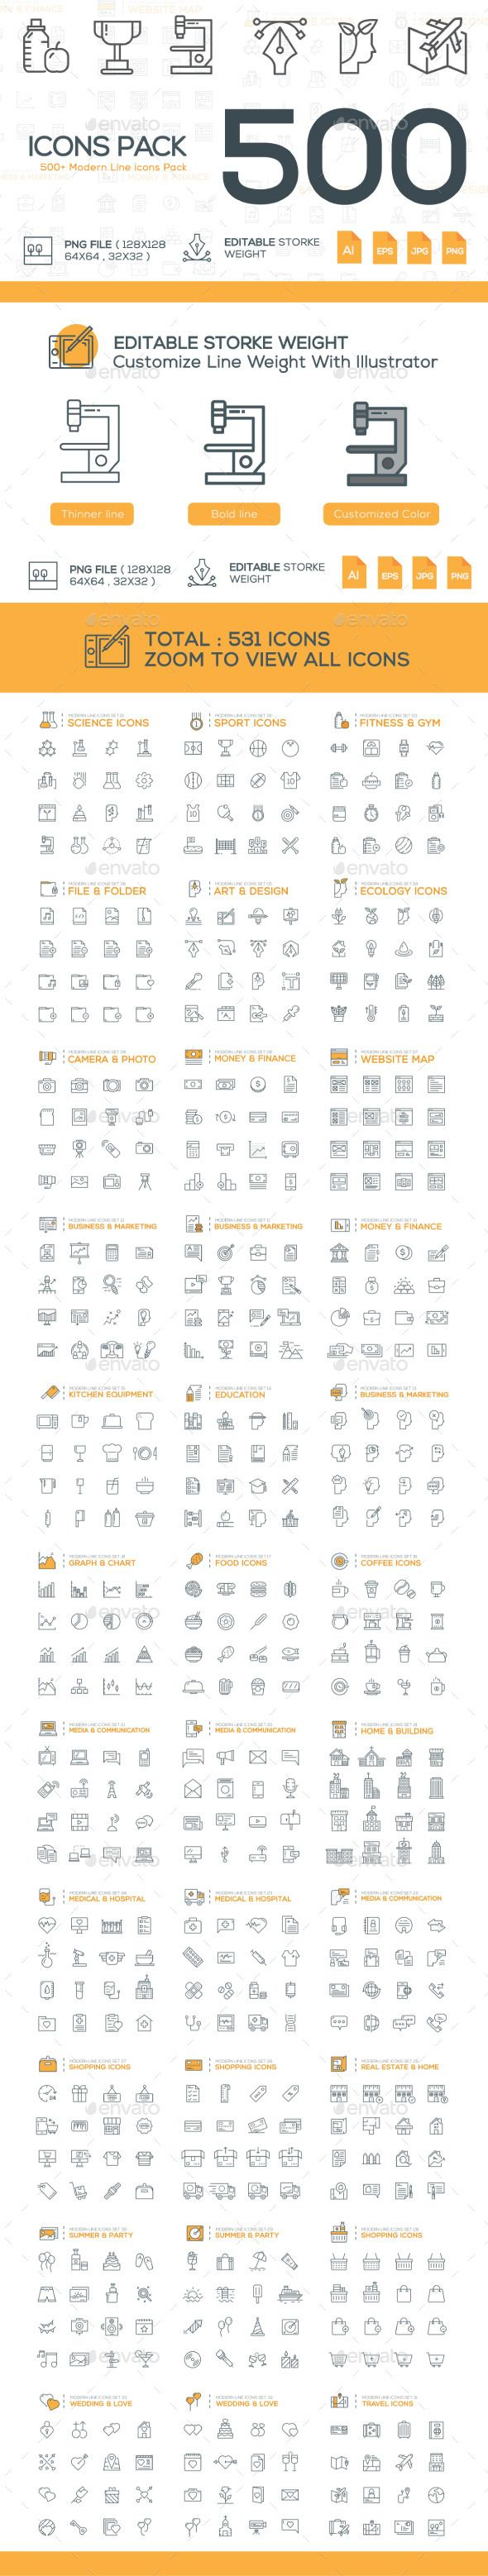 531 Modern Line Icons #design Download: http://graphicriver.net/item/531-modern-line-icons/12700656?ref=ksioks